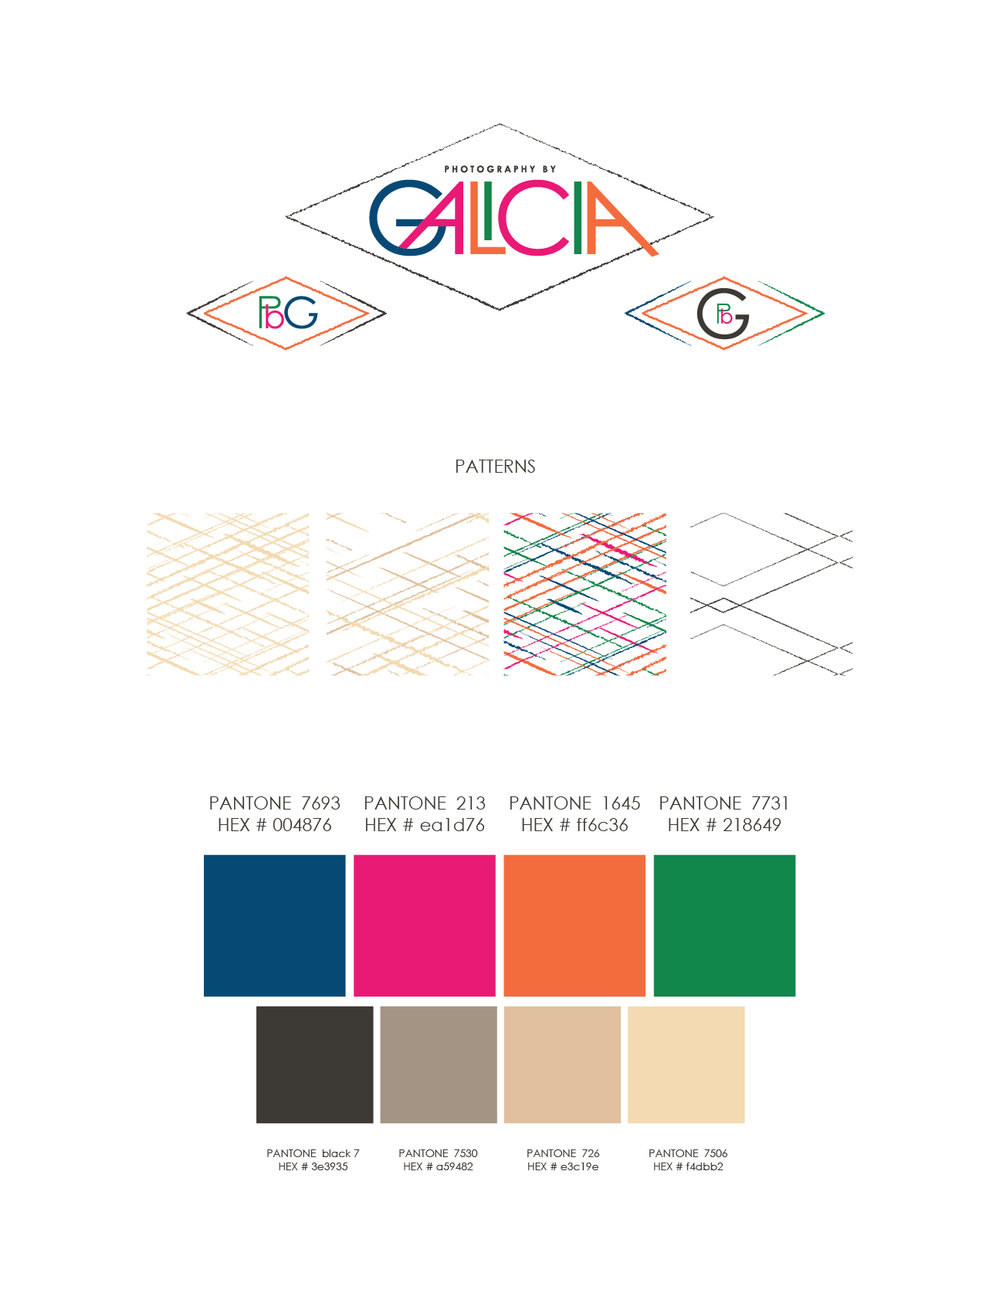 Photography by Galicia final brand guide